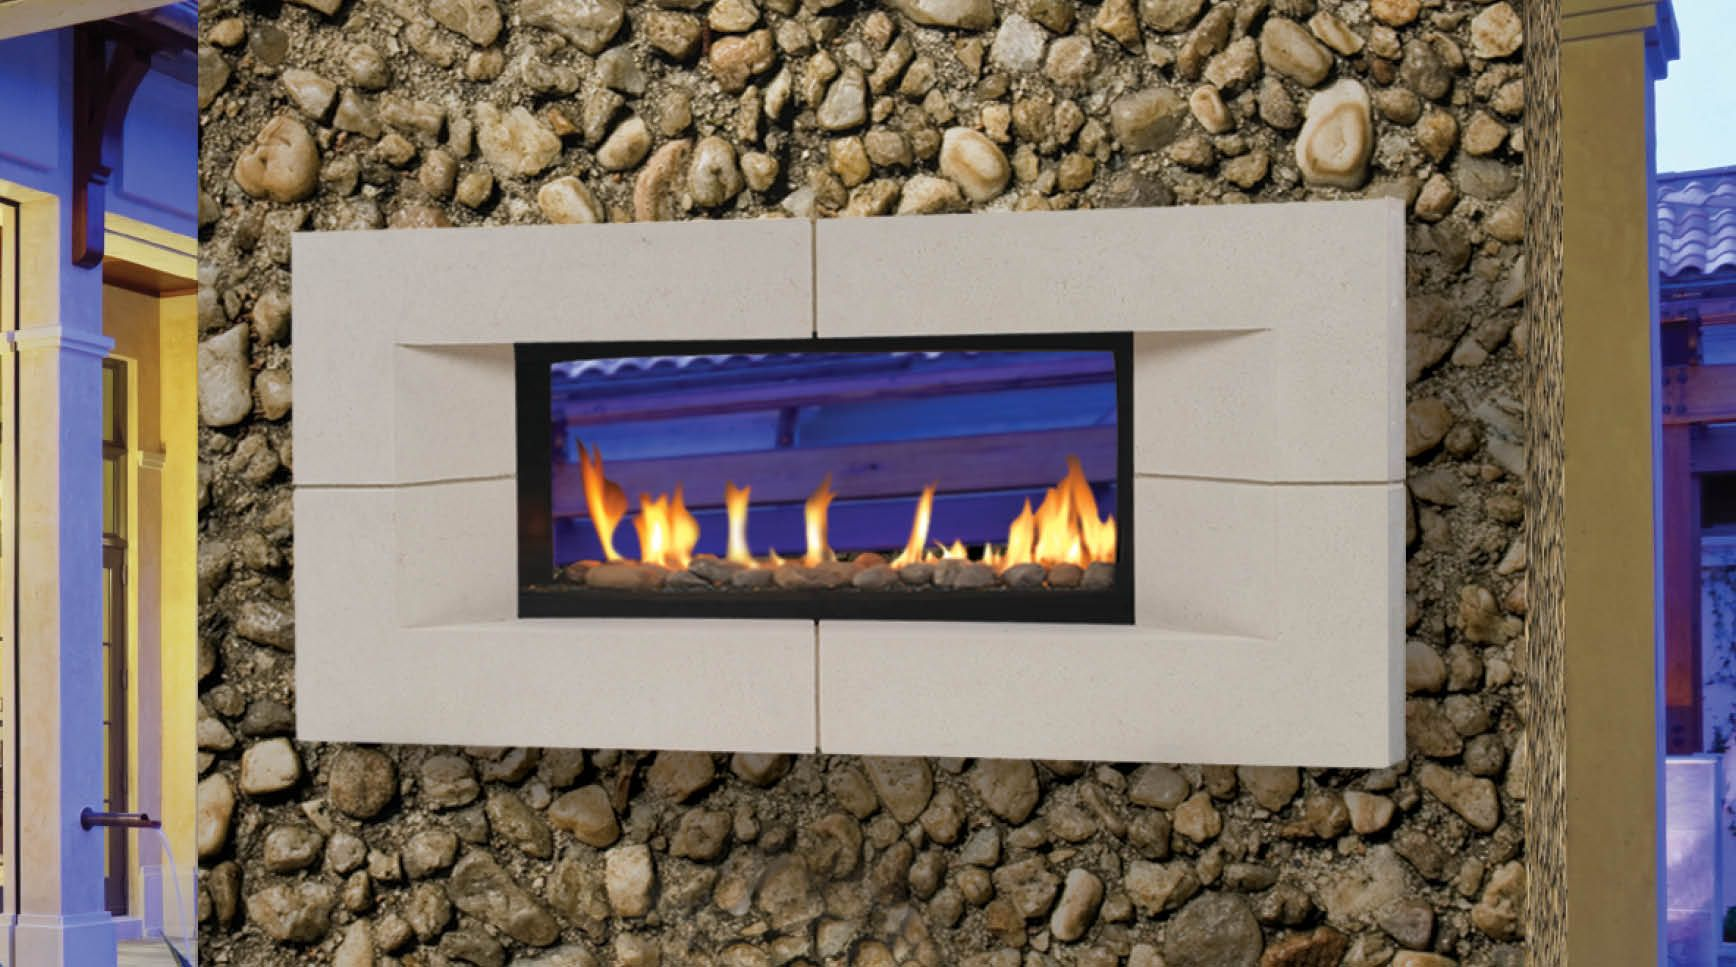 Majestic Outdoor Fireplace Two Sided Indoor Outdoor Fireplace Inside In Living